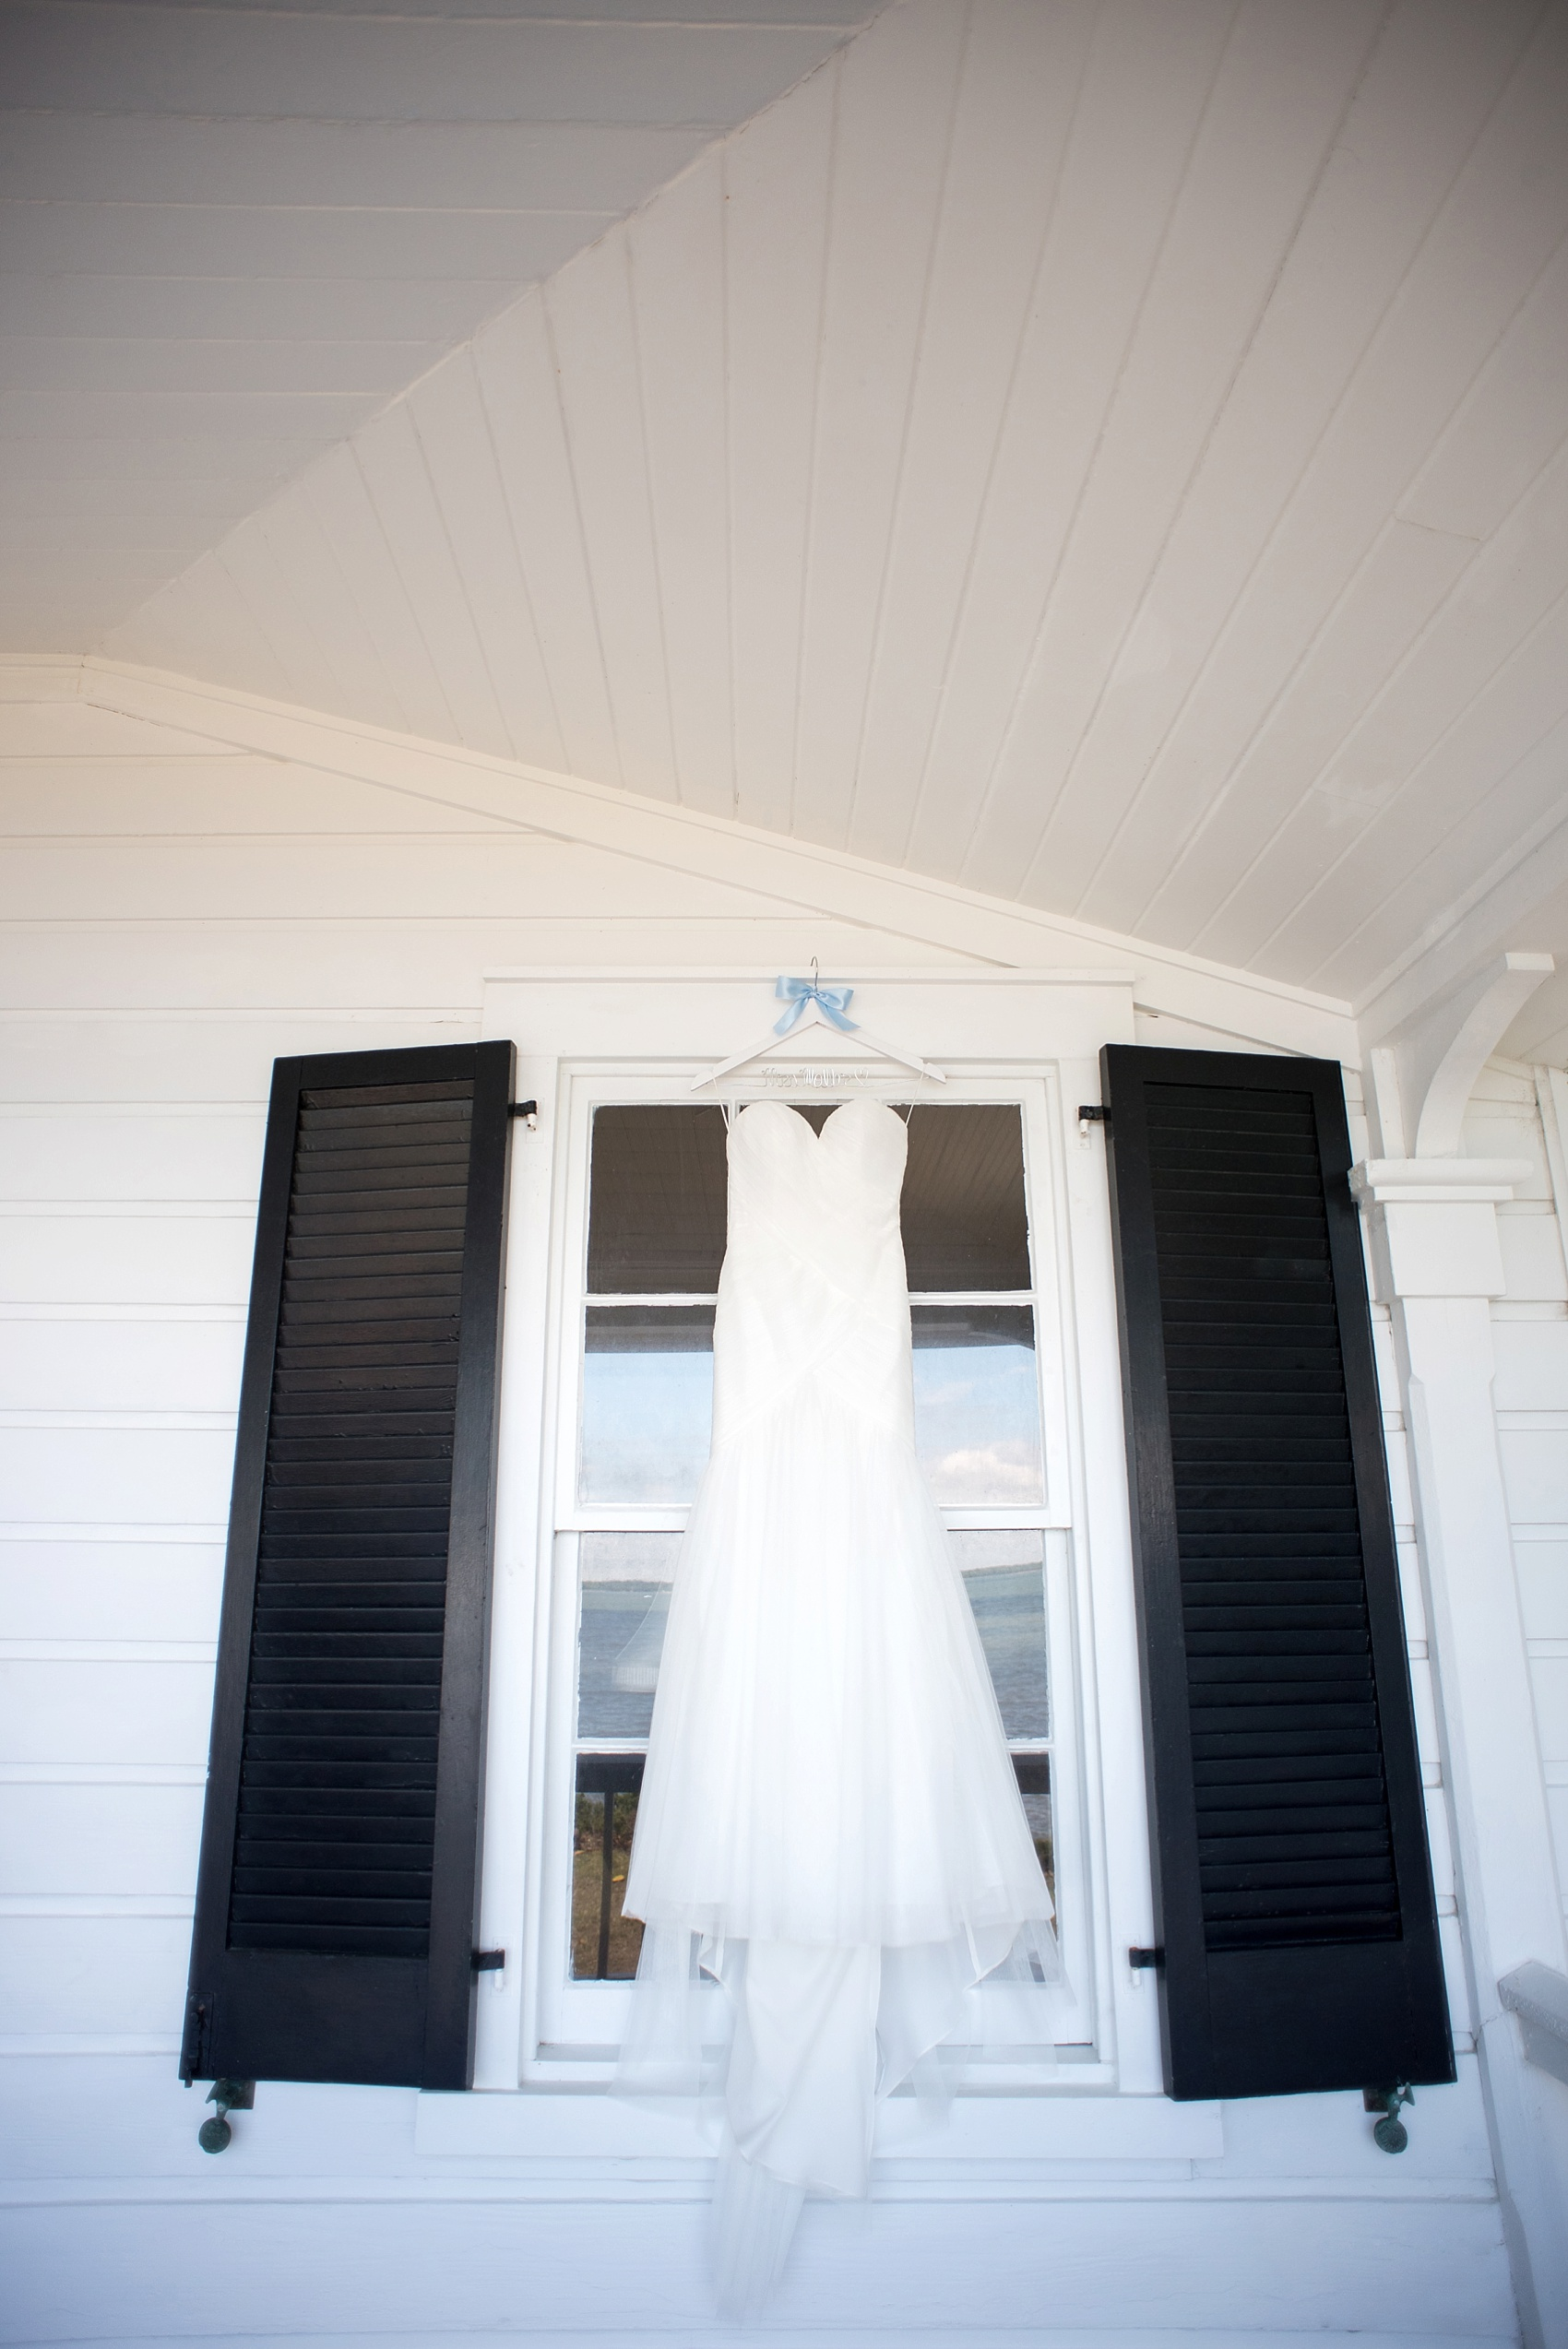 Southern porch WToo by Watters wedding gown photo by Mikkel Paige for a Hilton Head, Haig Point wedding.